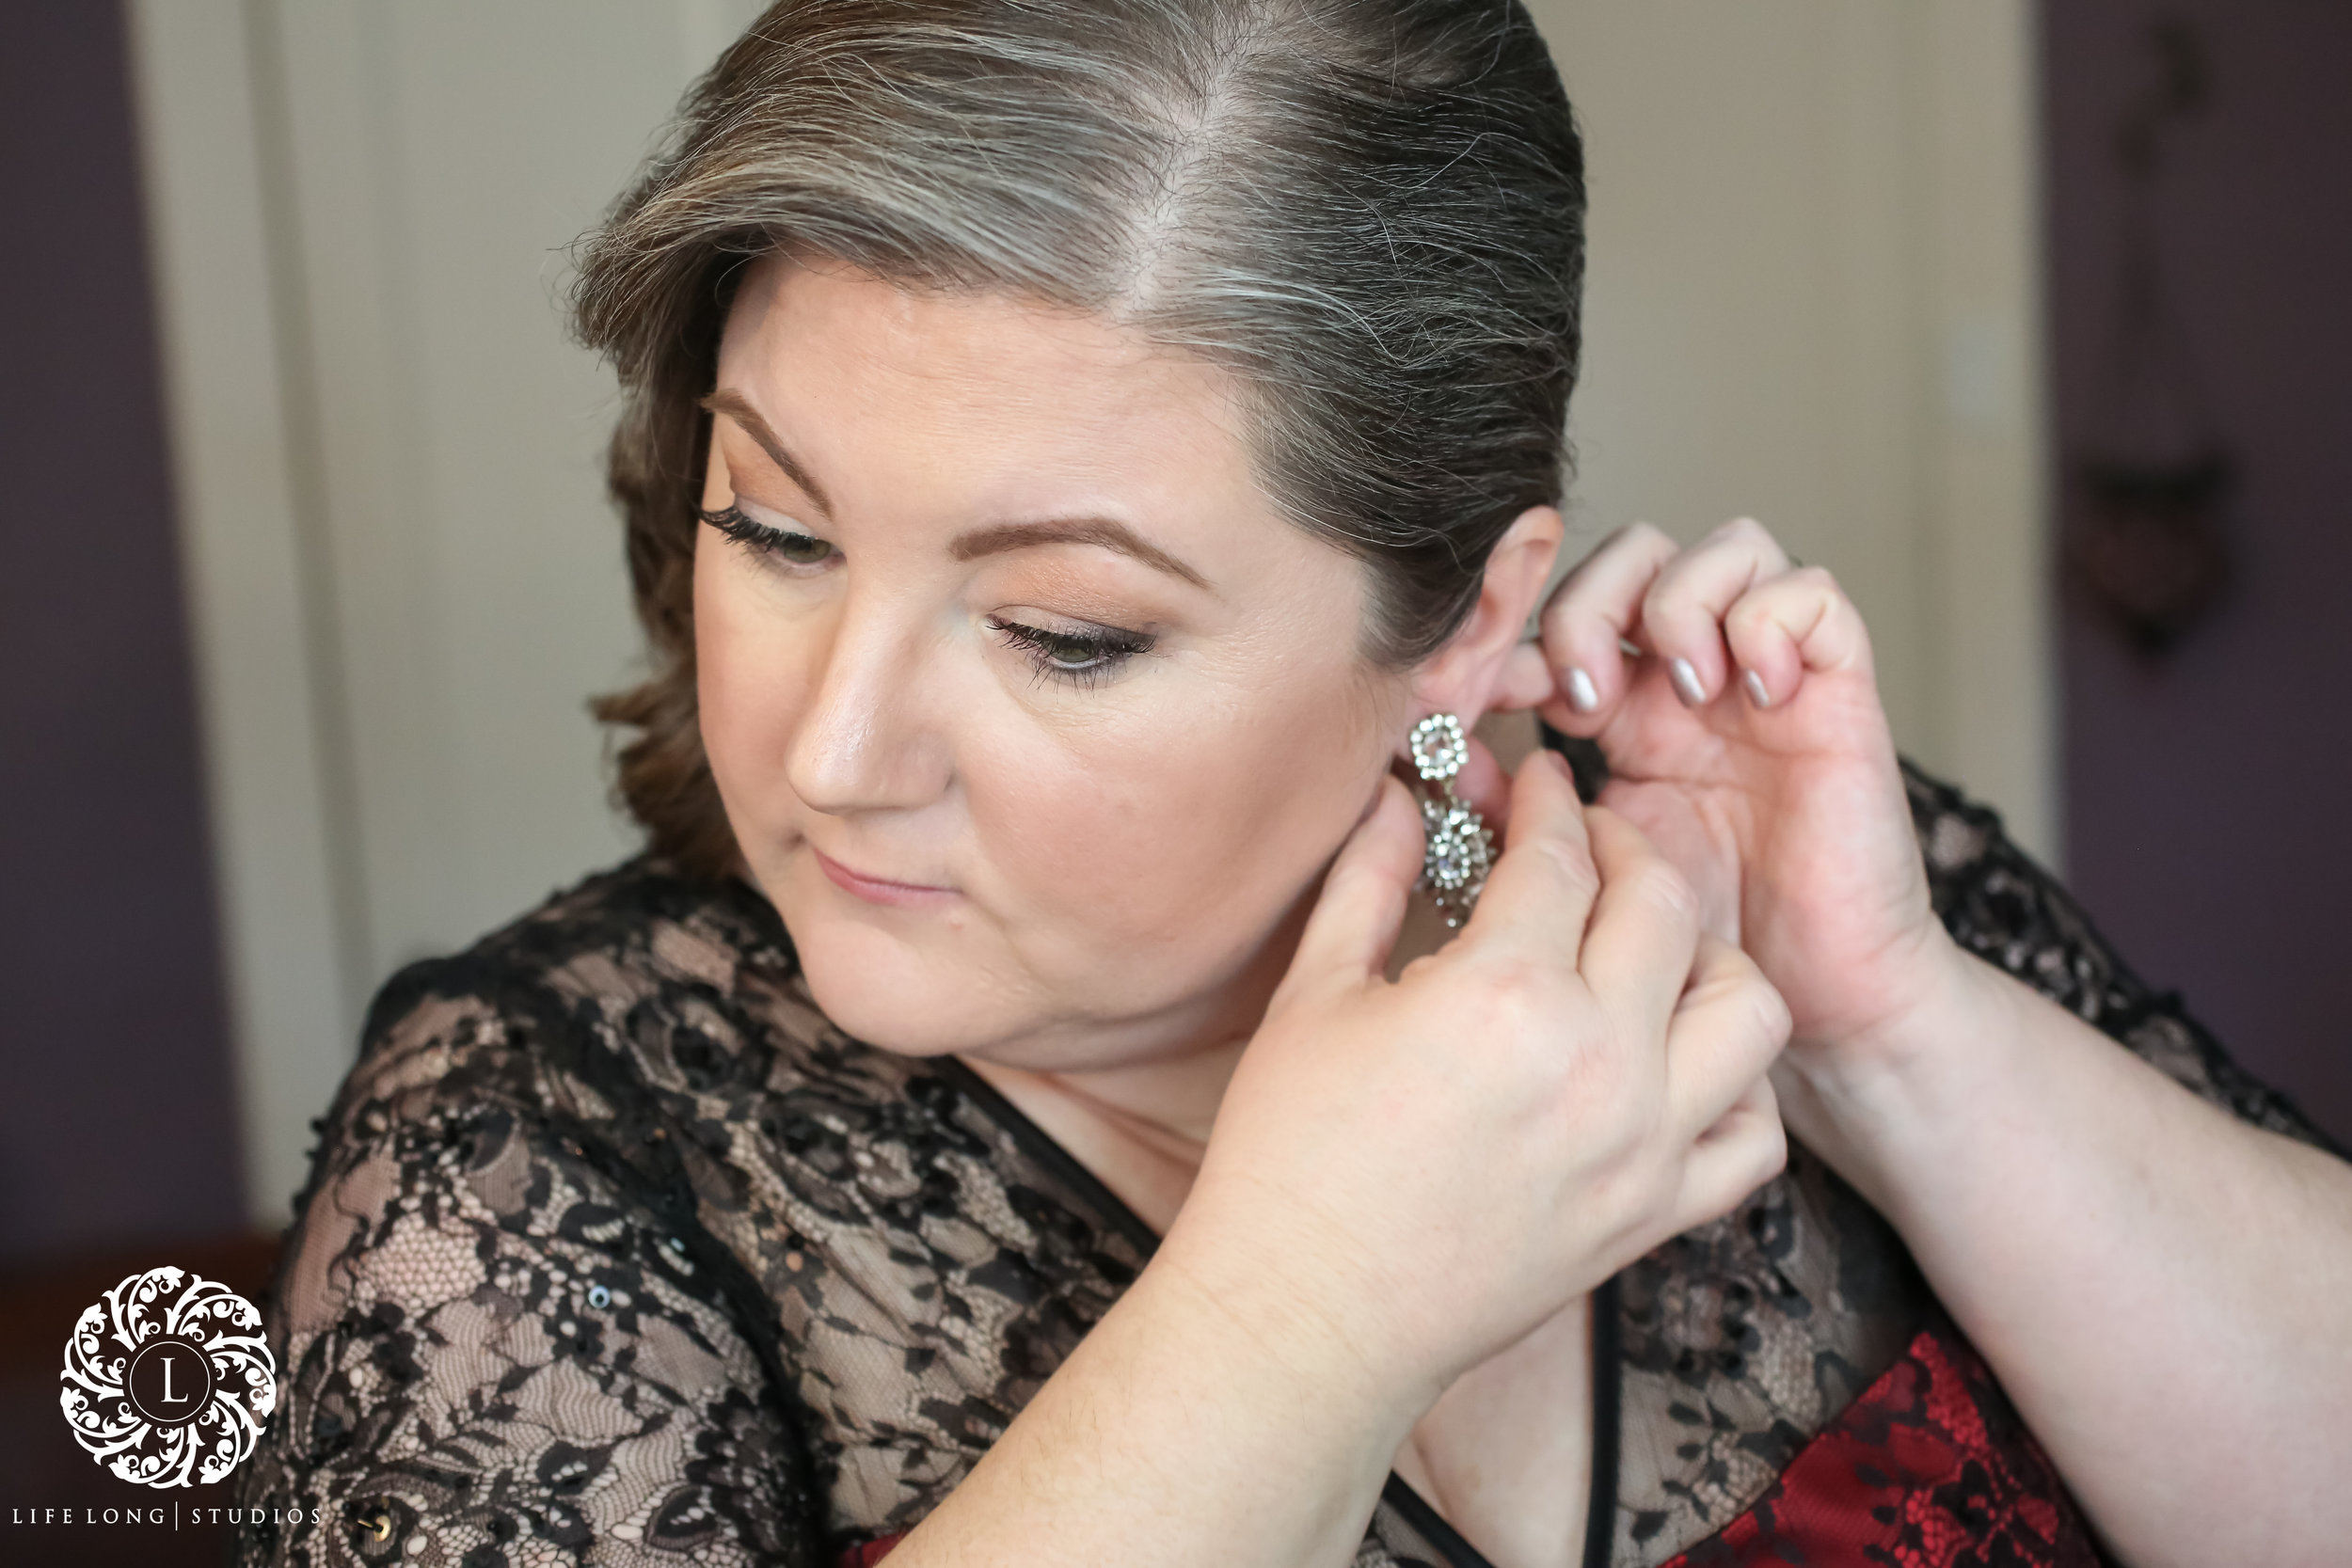 Adding the final touches to complete this sultry vintage look.